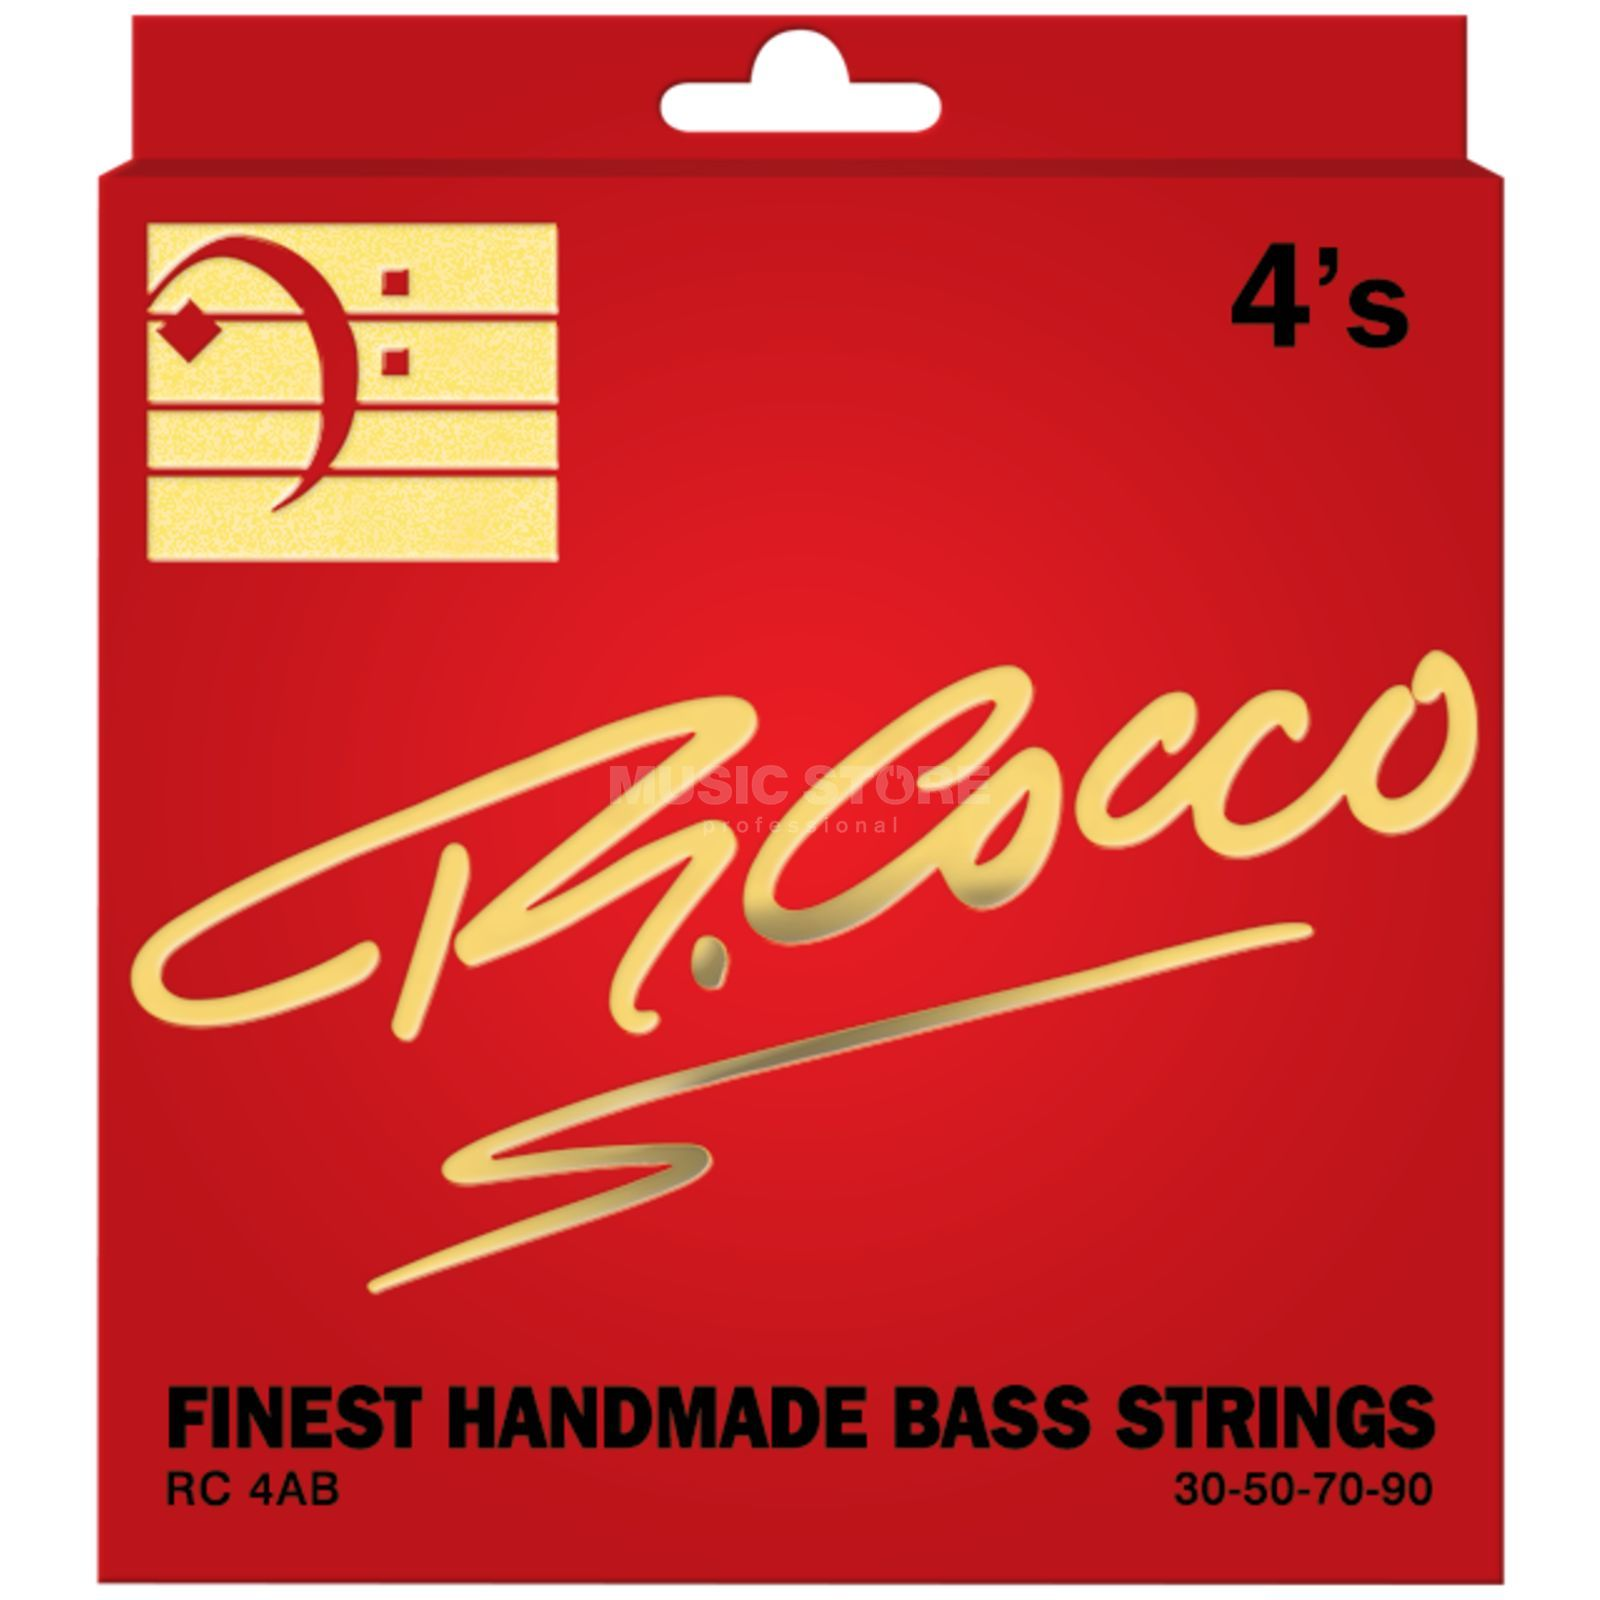 Cocco RC4AB Bass Strings 30-90 4 Set, 30-50-70-90 Classic Wound Product Image